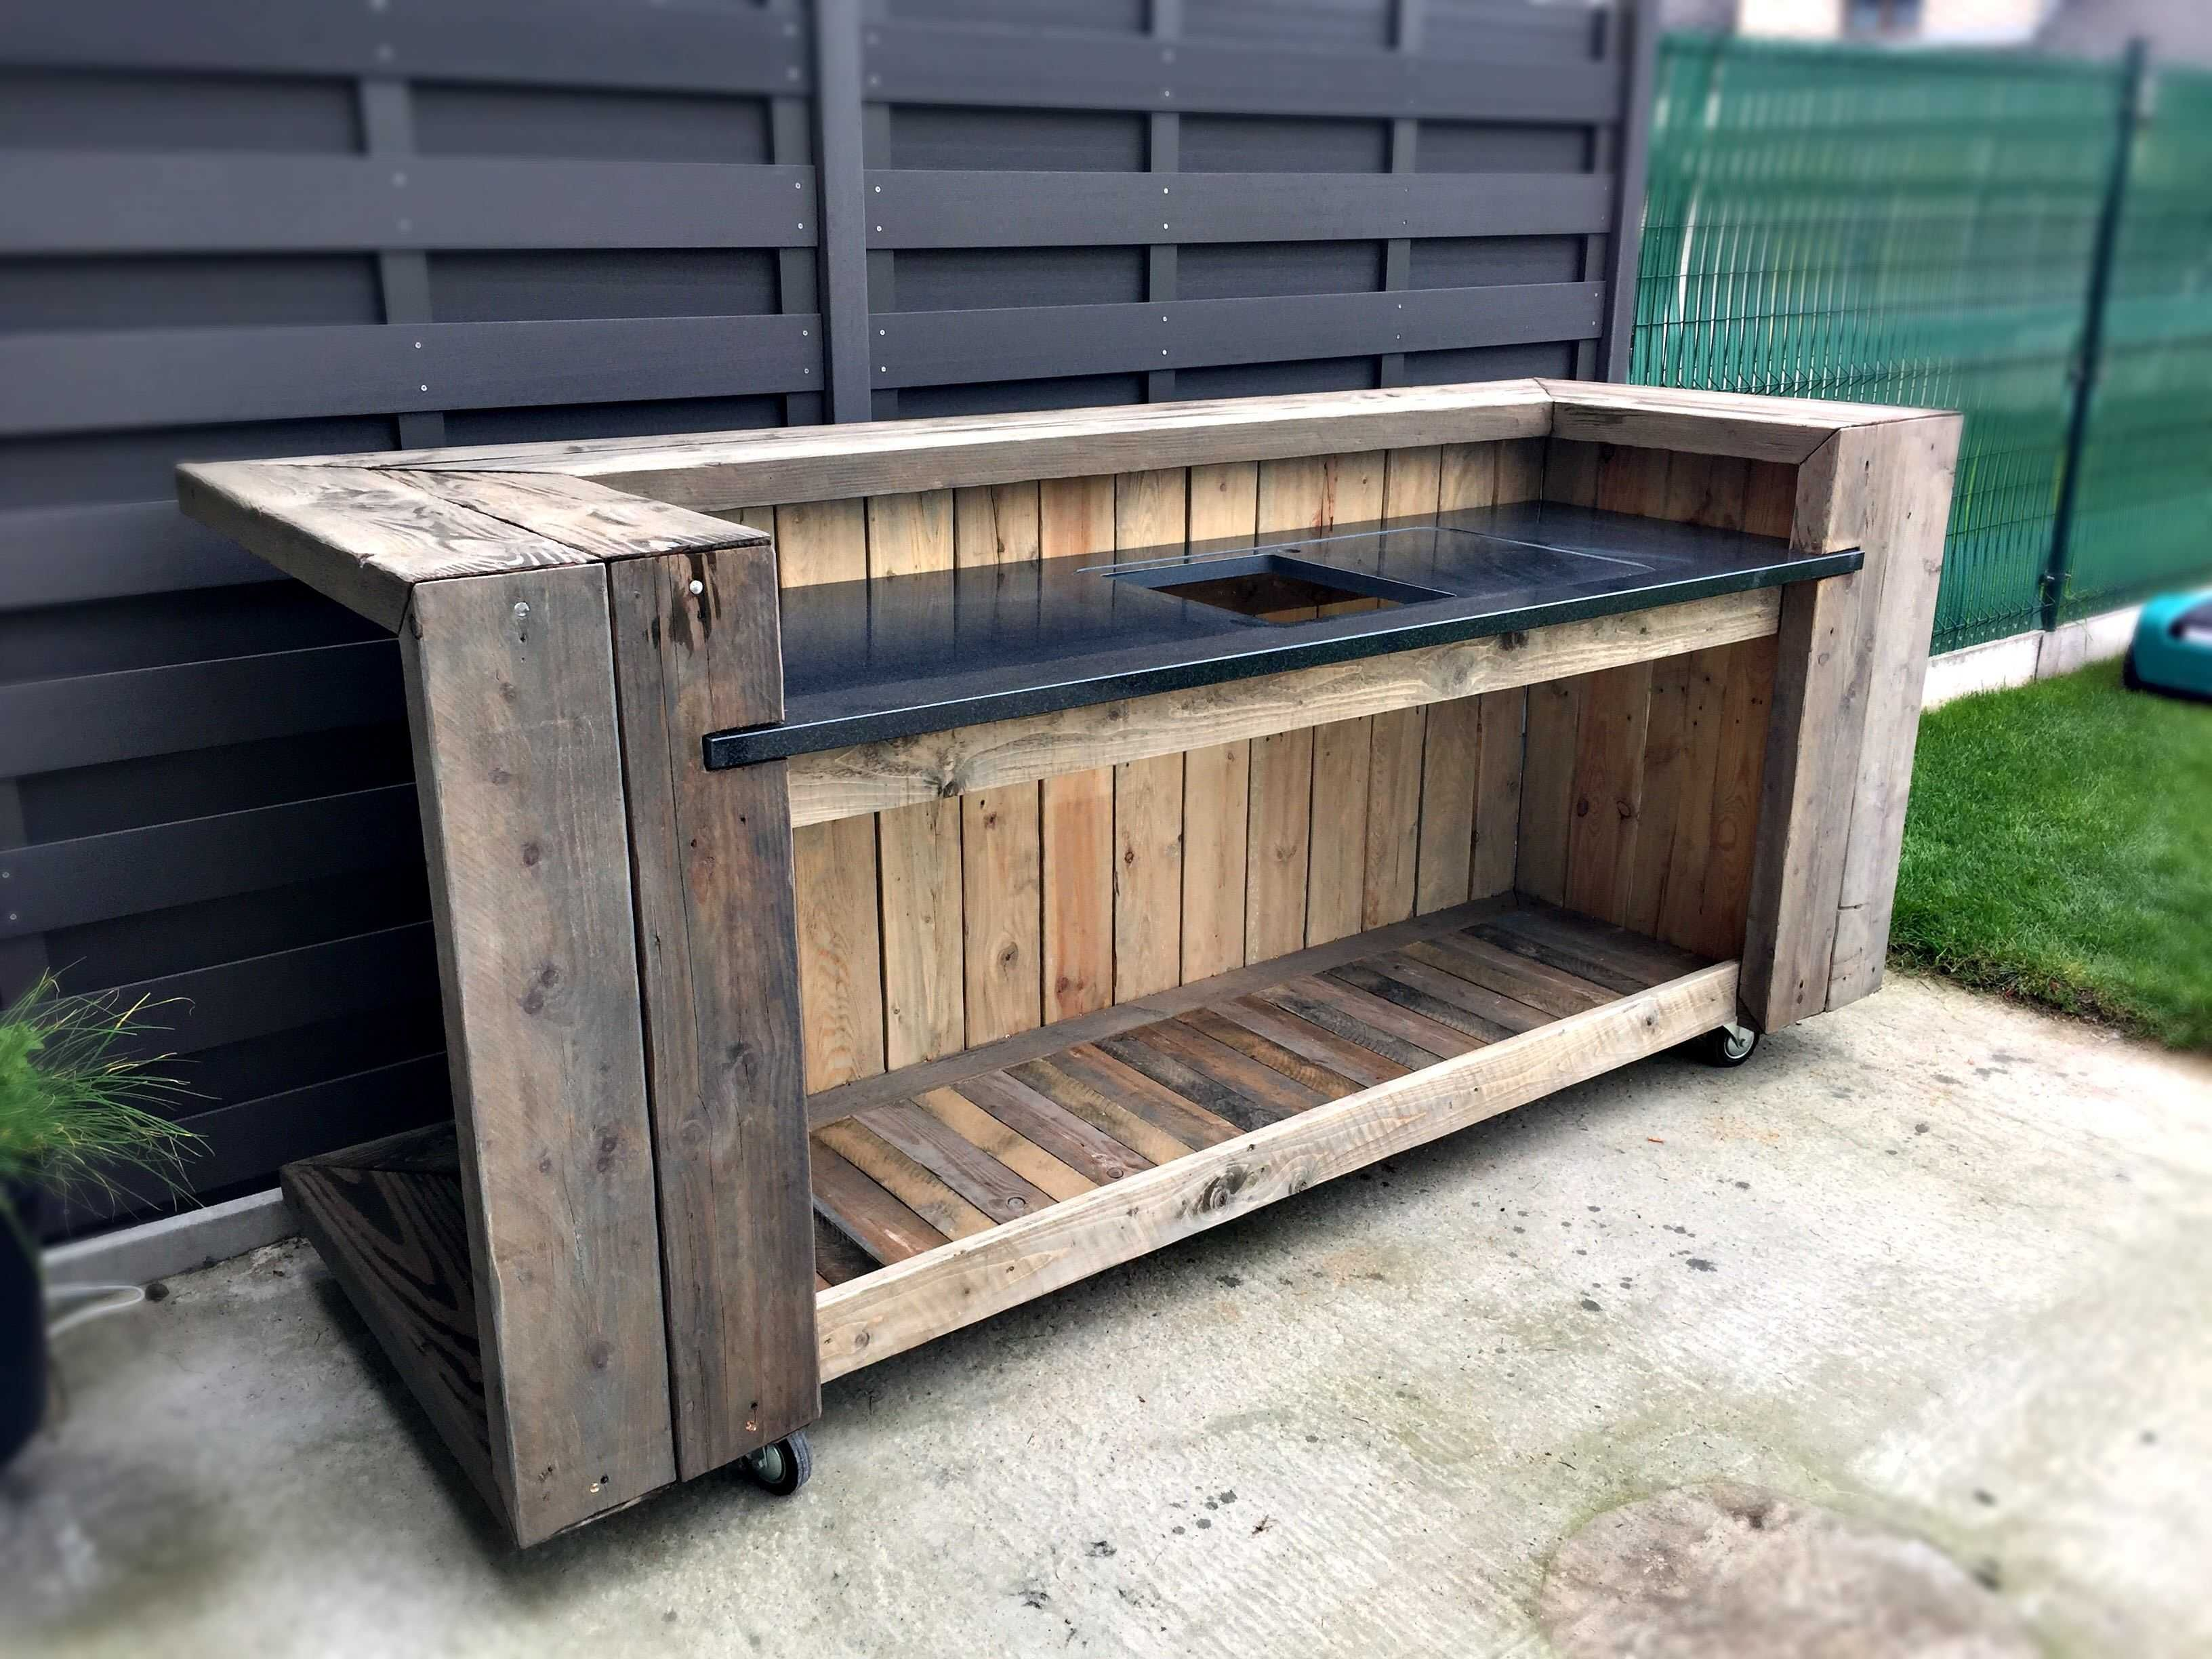 I made this pallet kitchen bar for my home. I took me three days to